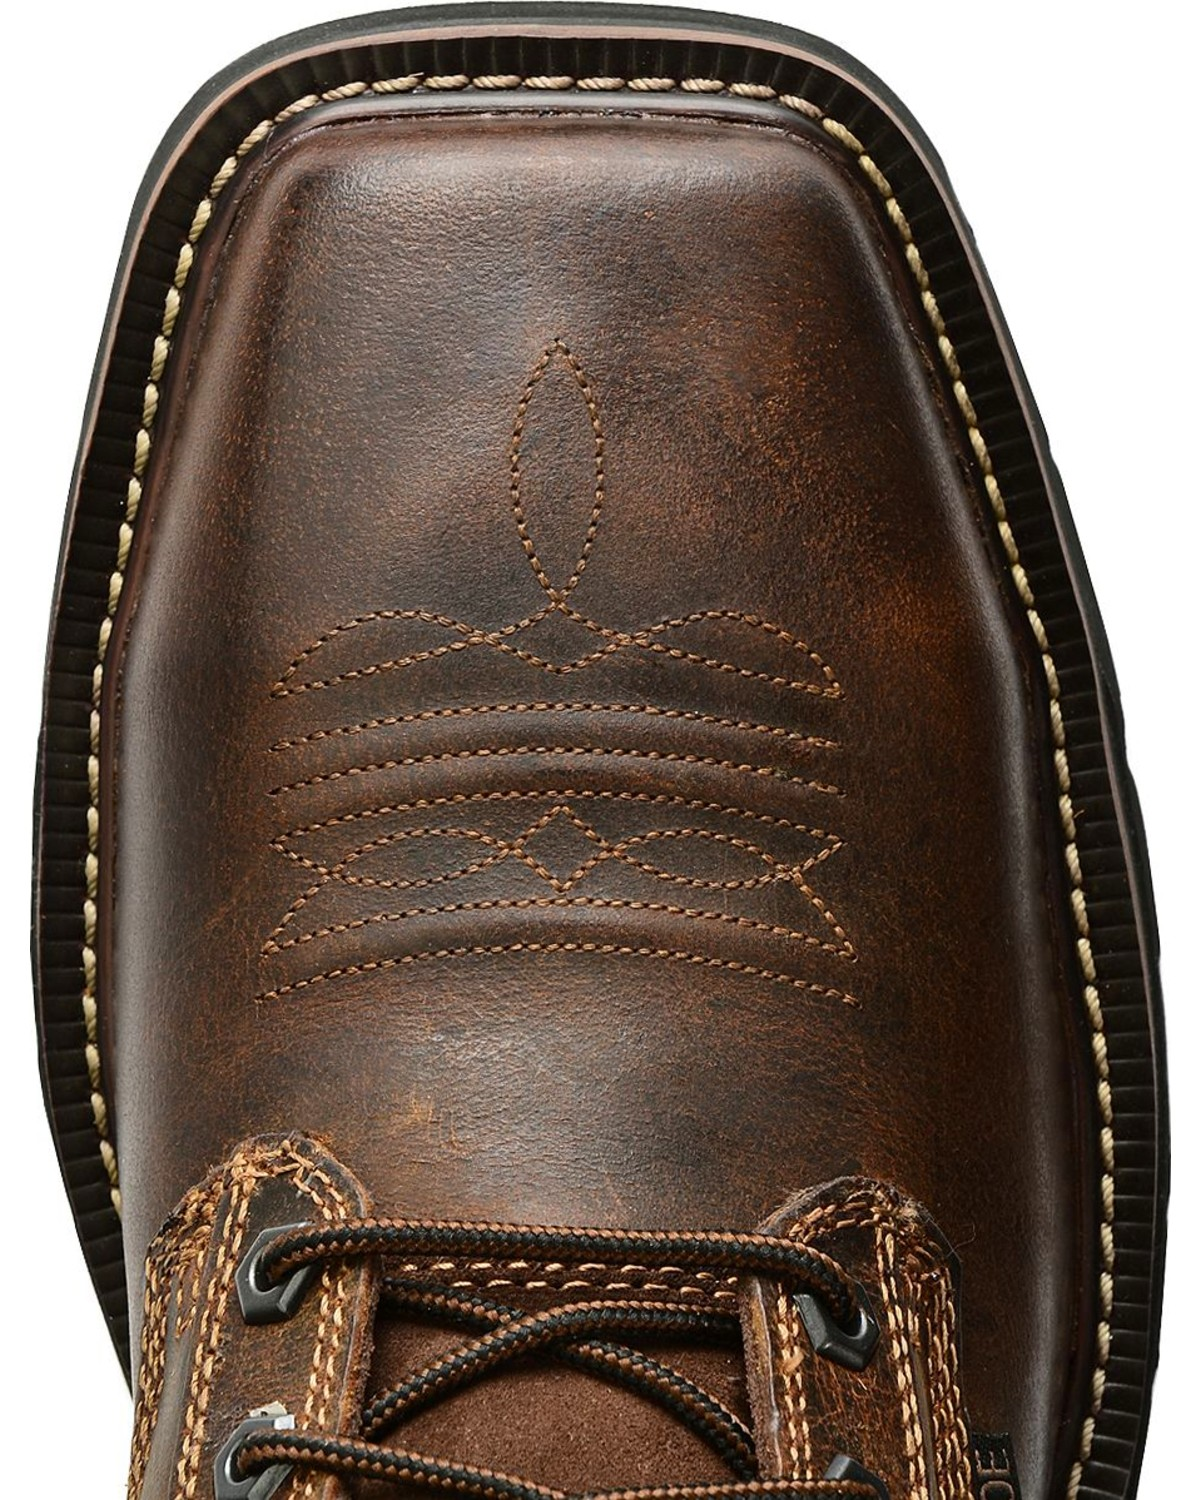 a00642d6156 Justin Lace Up Roper Work Boots - Best Picture Of Boot Imageco.Org